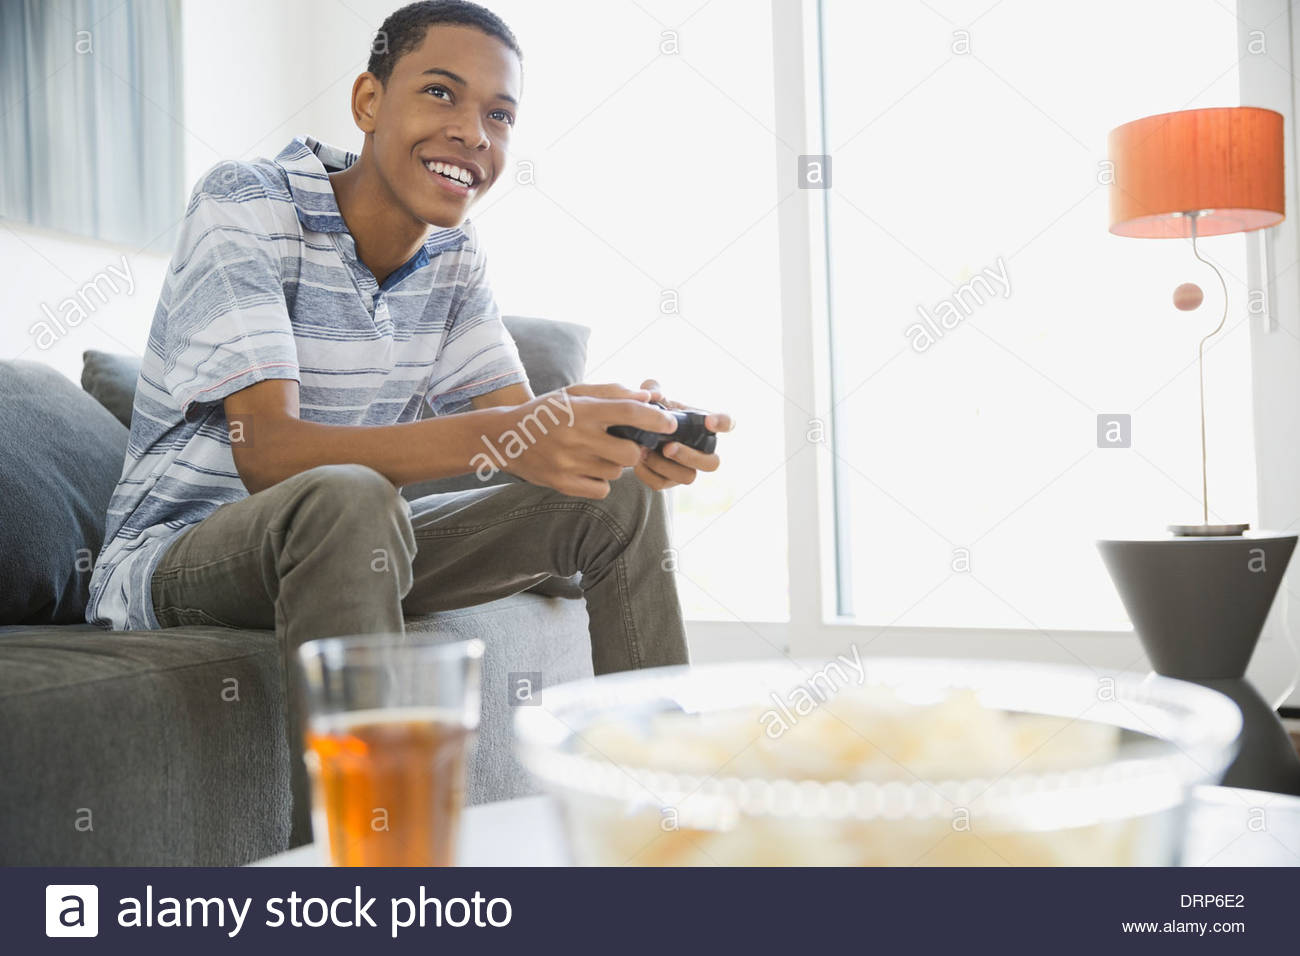 Teen playing video games at home - Stock Image